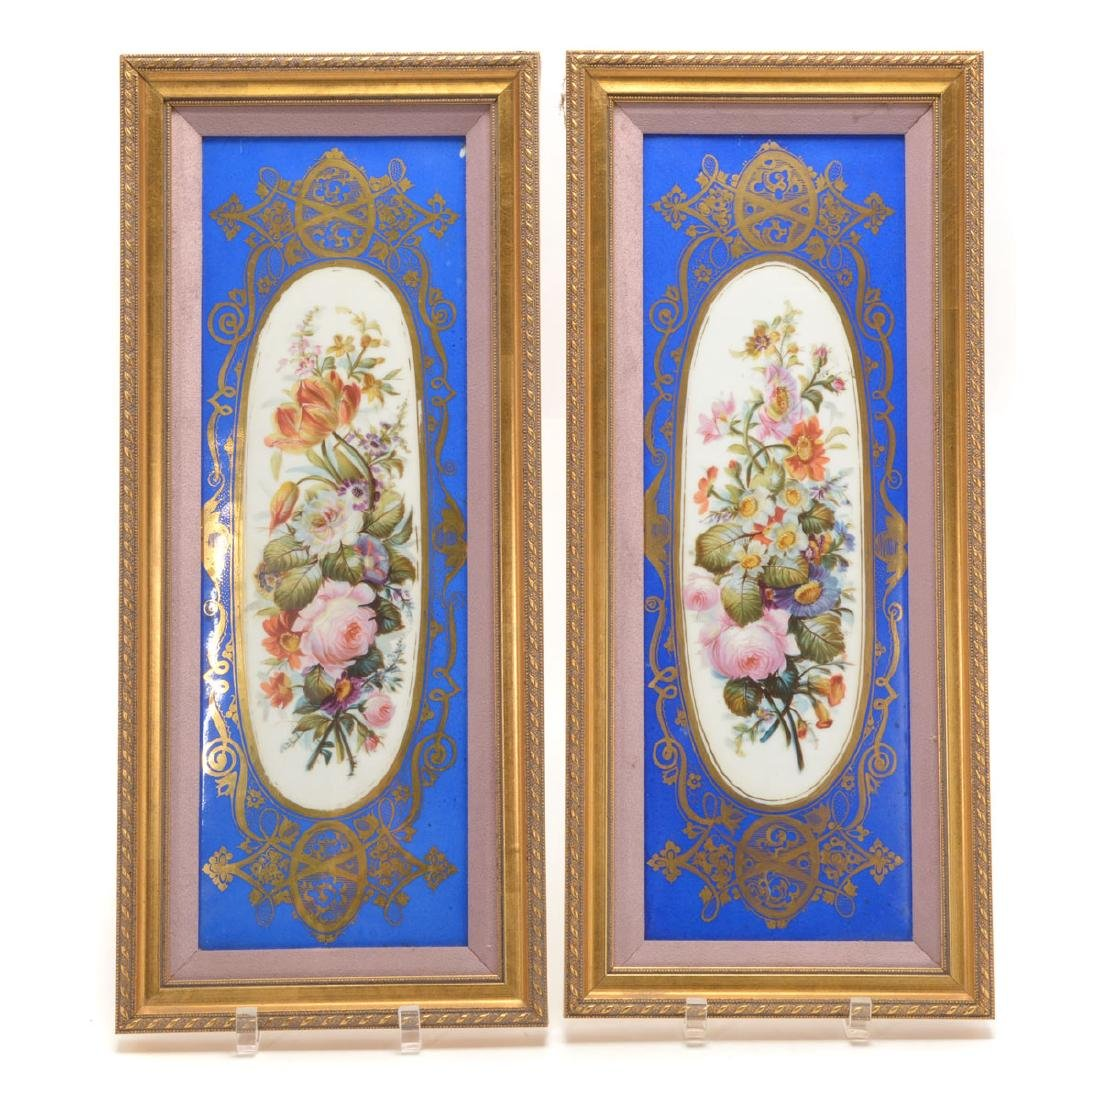 Pair of Sevres Style Porcelain Plaques with Floral